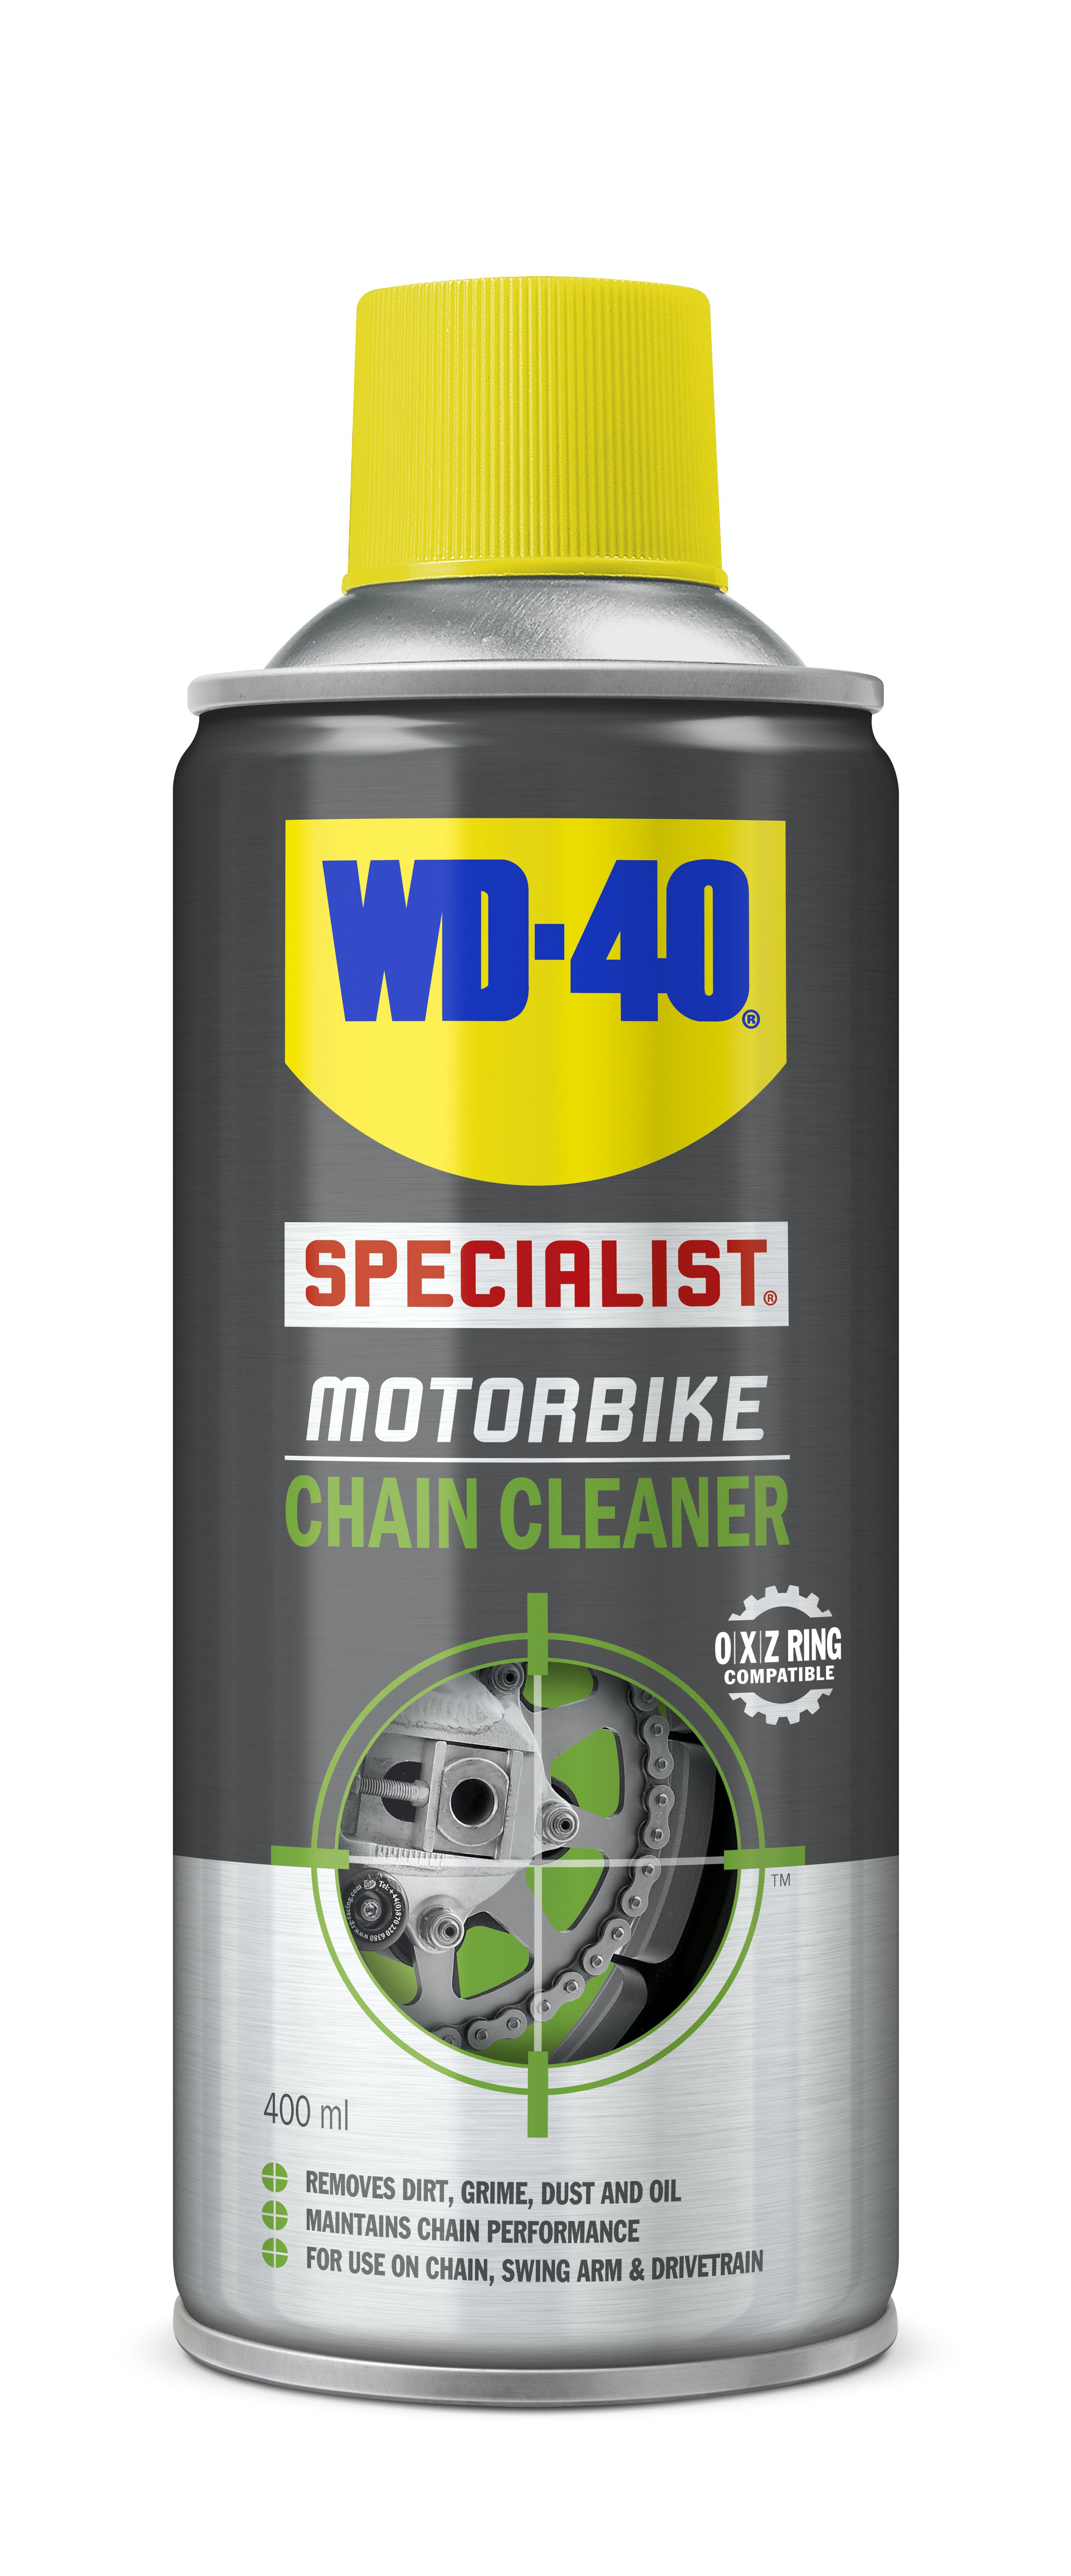 Win Motorbike Care Kit from WD-40 sweepstakes